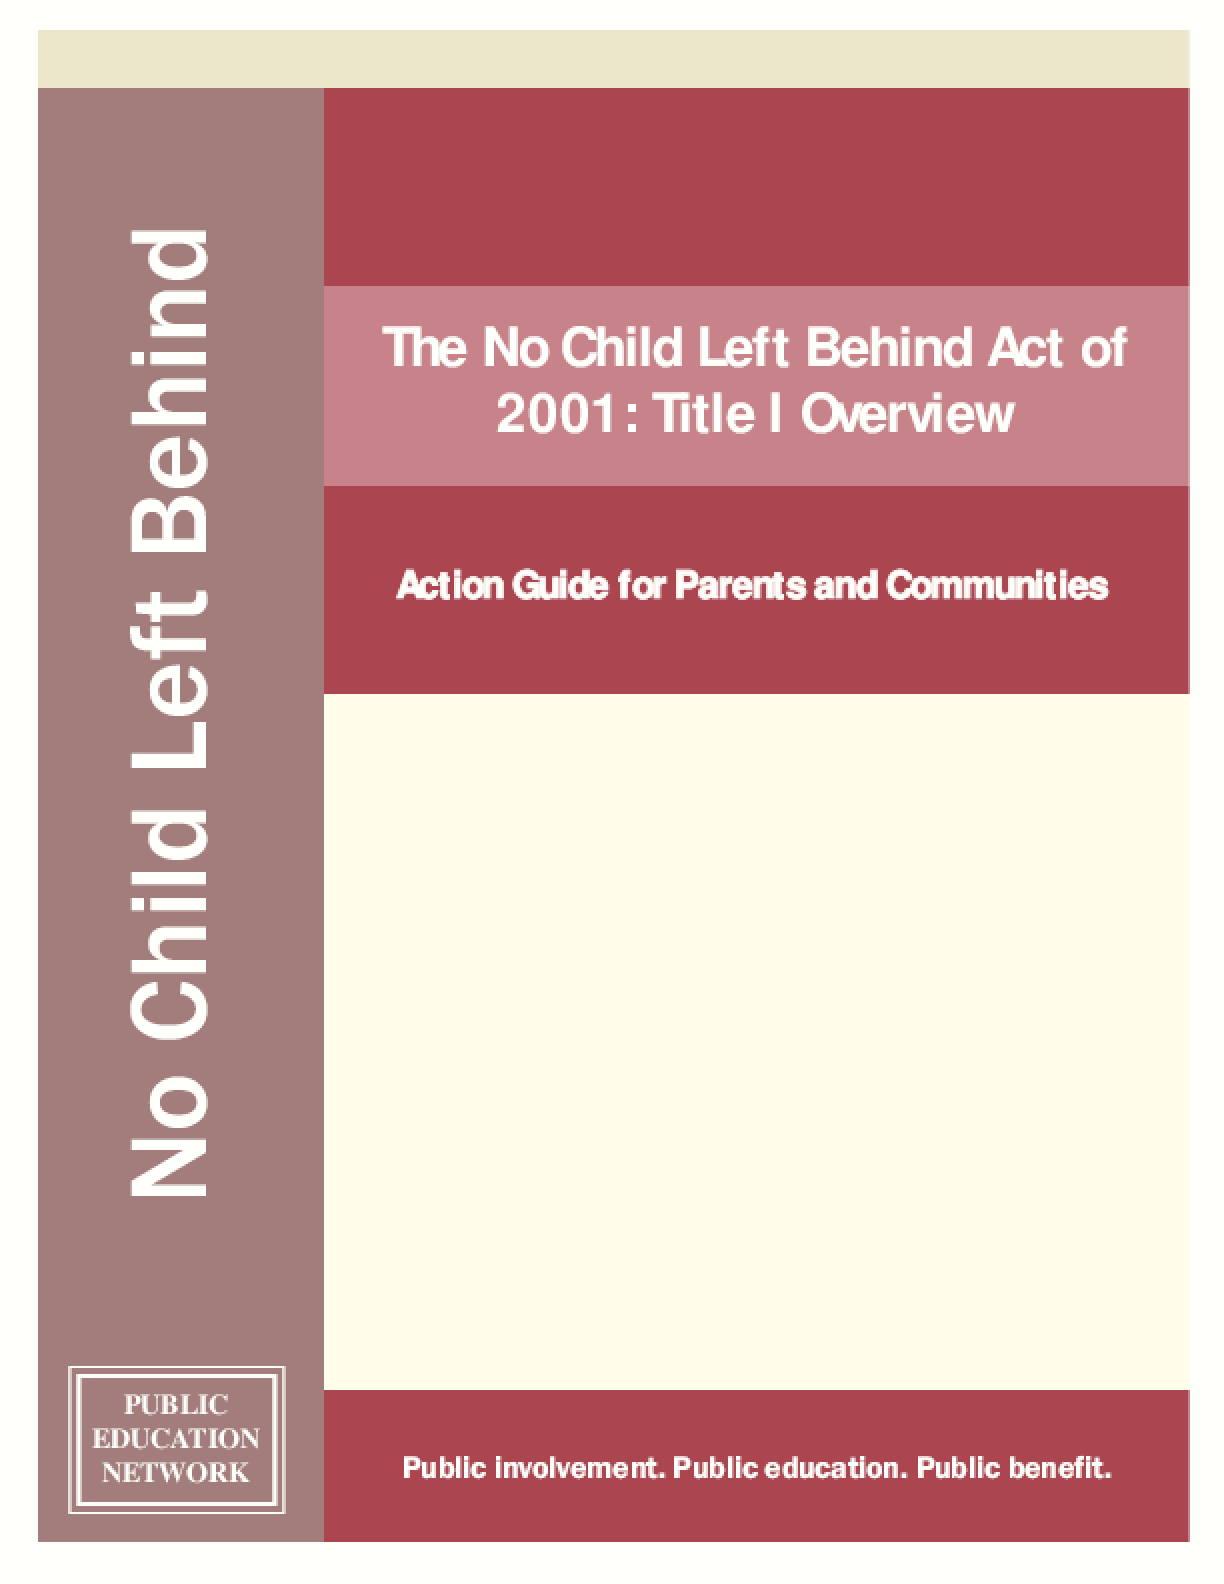 The No Child Left Behind Act of 2001: Title I Overview: Action Guide for Parents and Communities